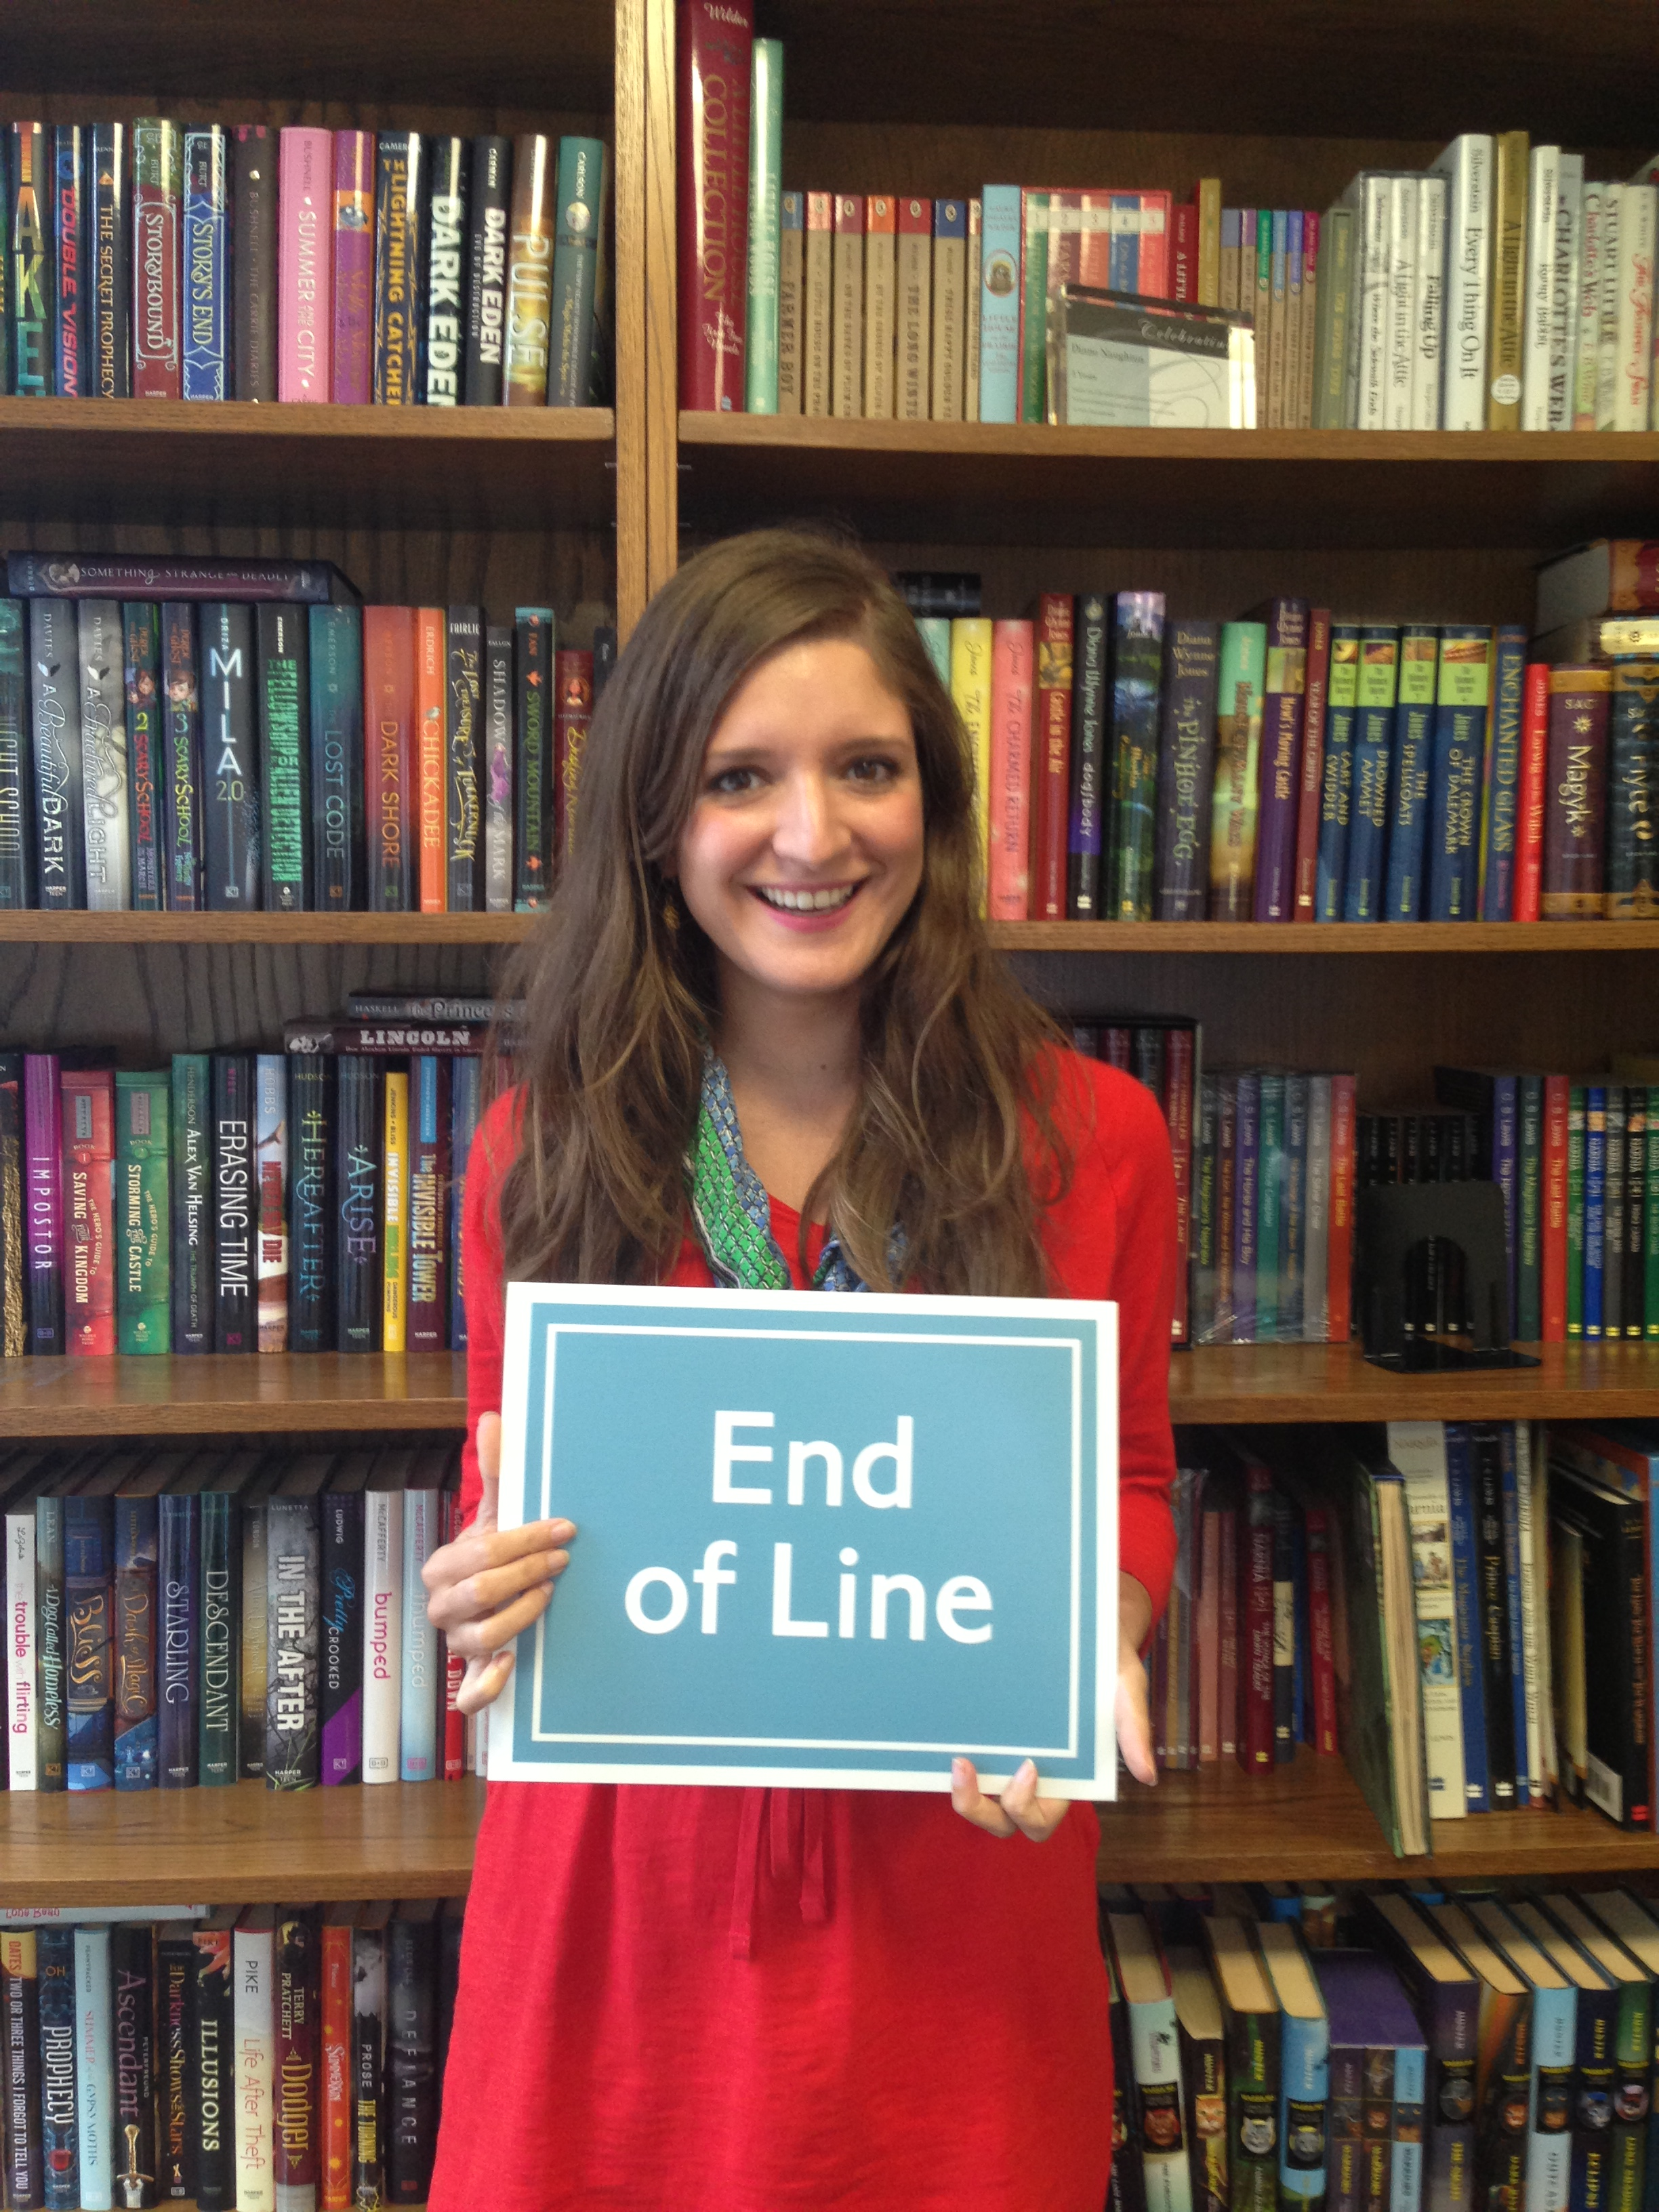 Molly Motch, Senior Manager, School & Library Integrated Marketing for HarperCollins Children's Books